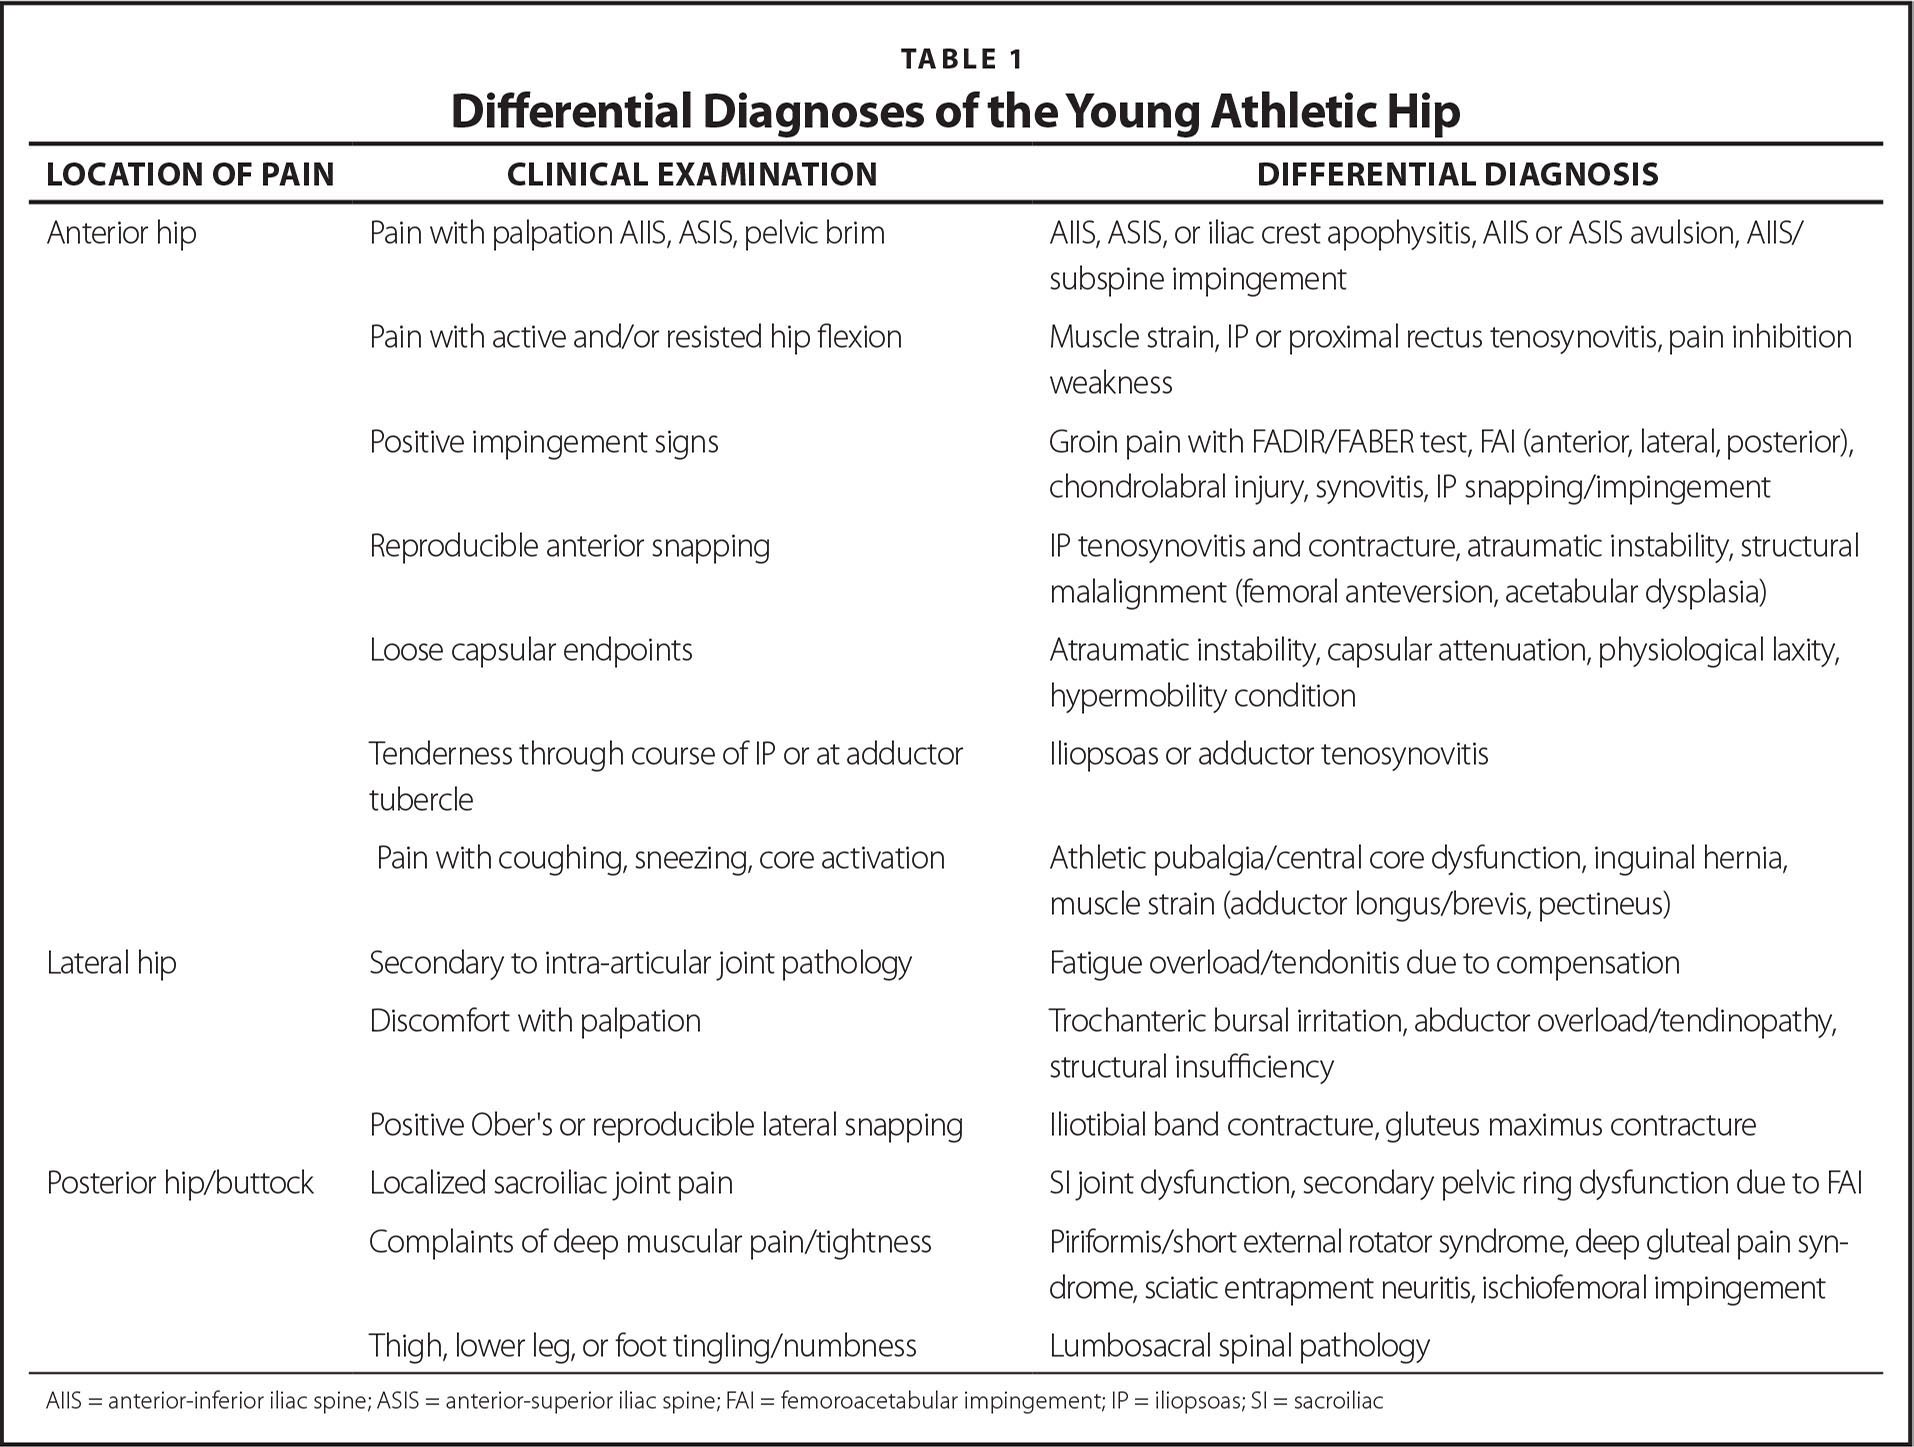 Differential Diagnoses of the Young Athletic Hip